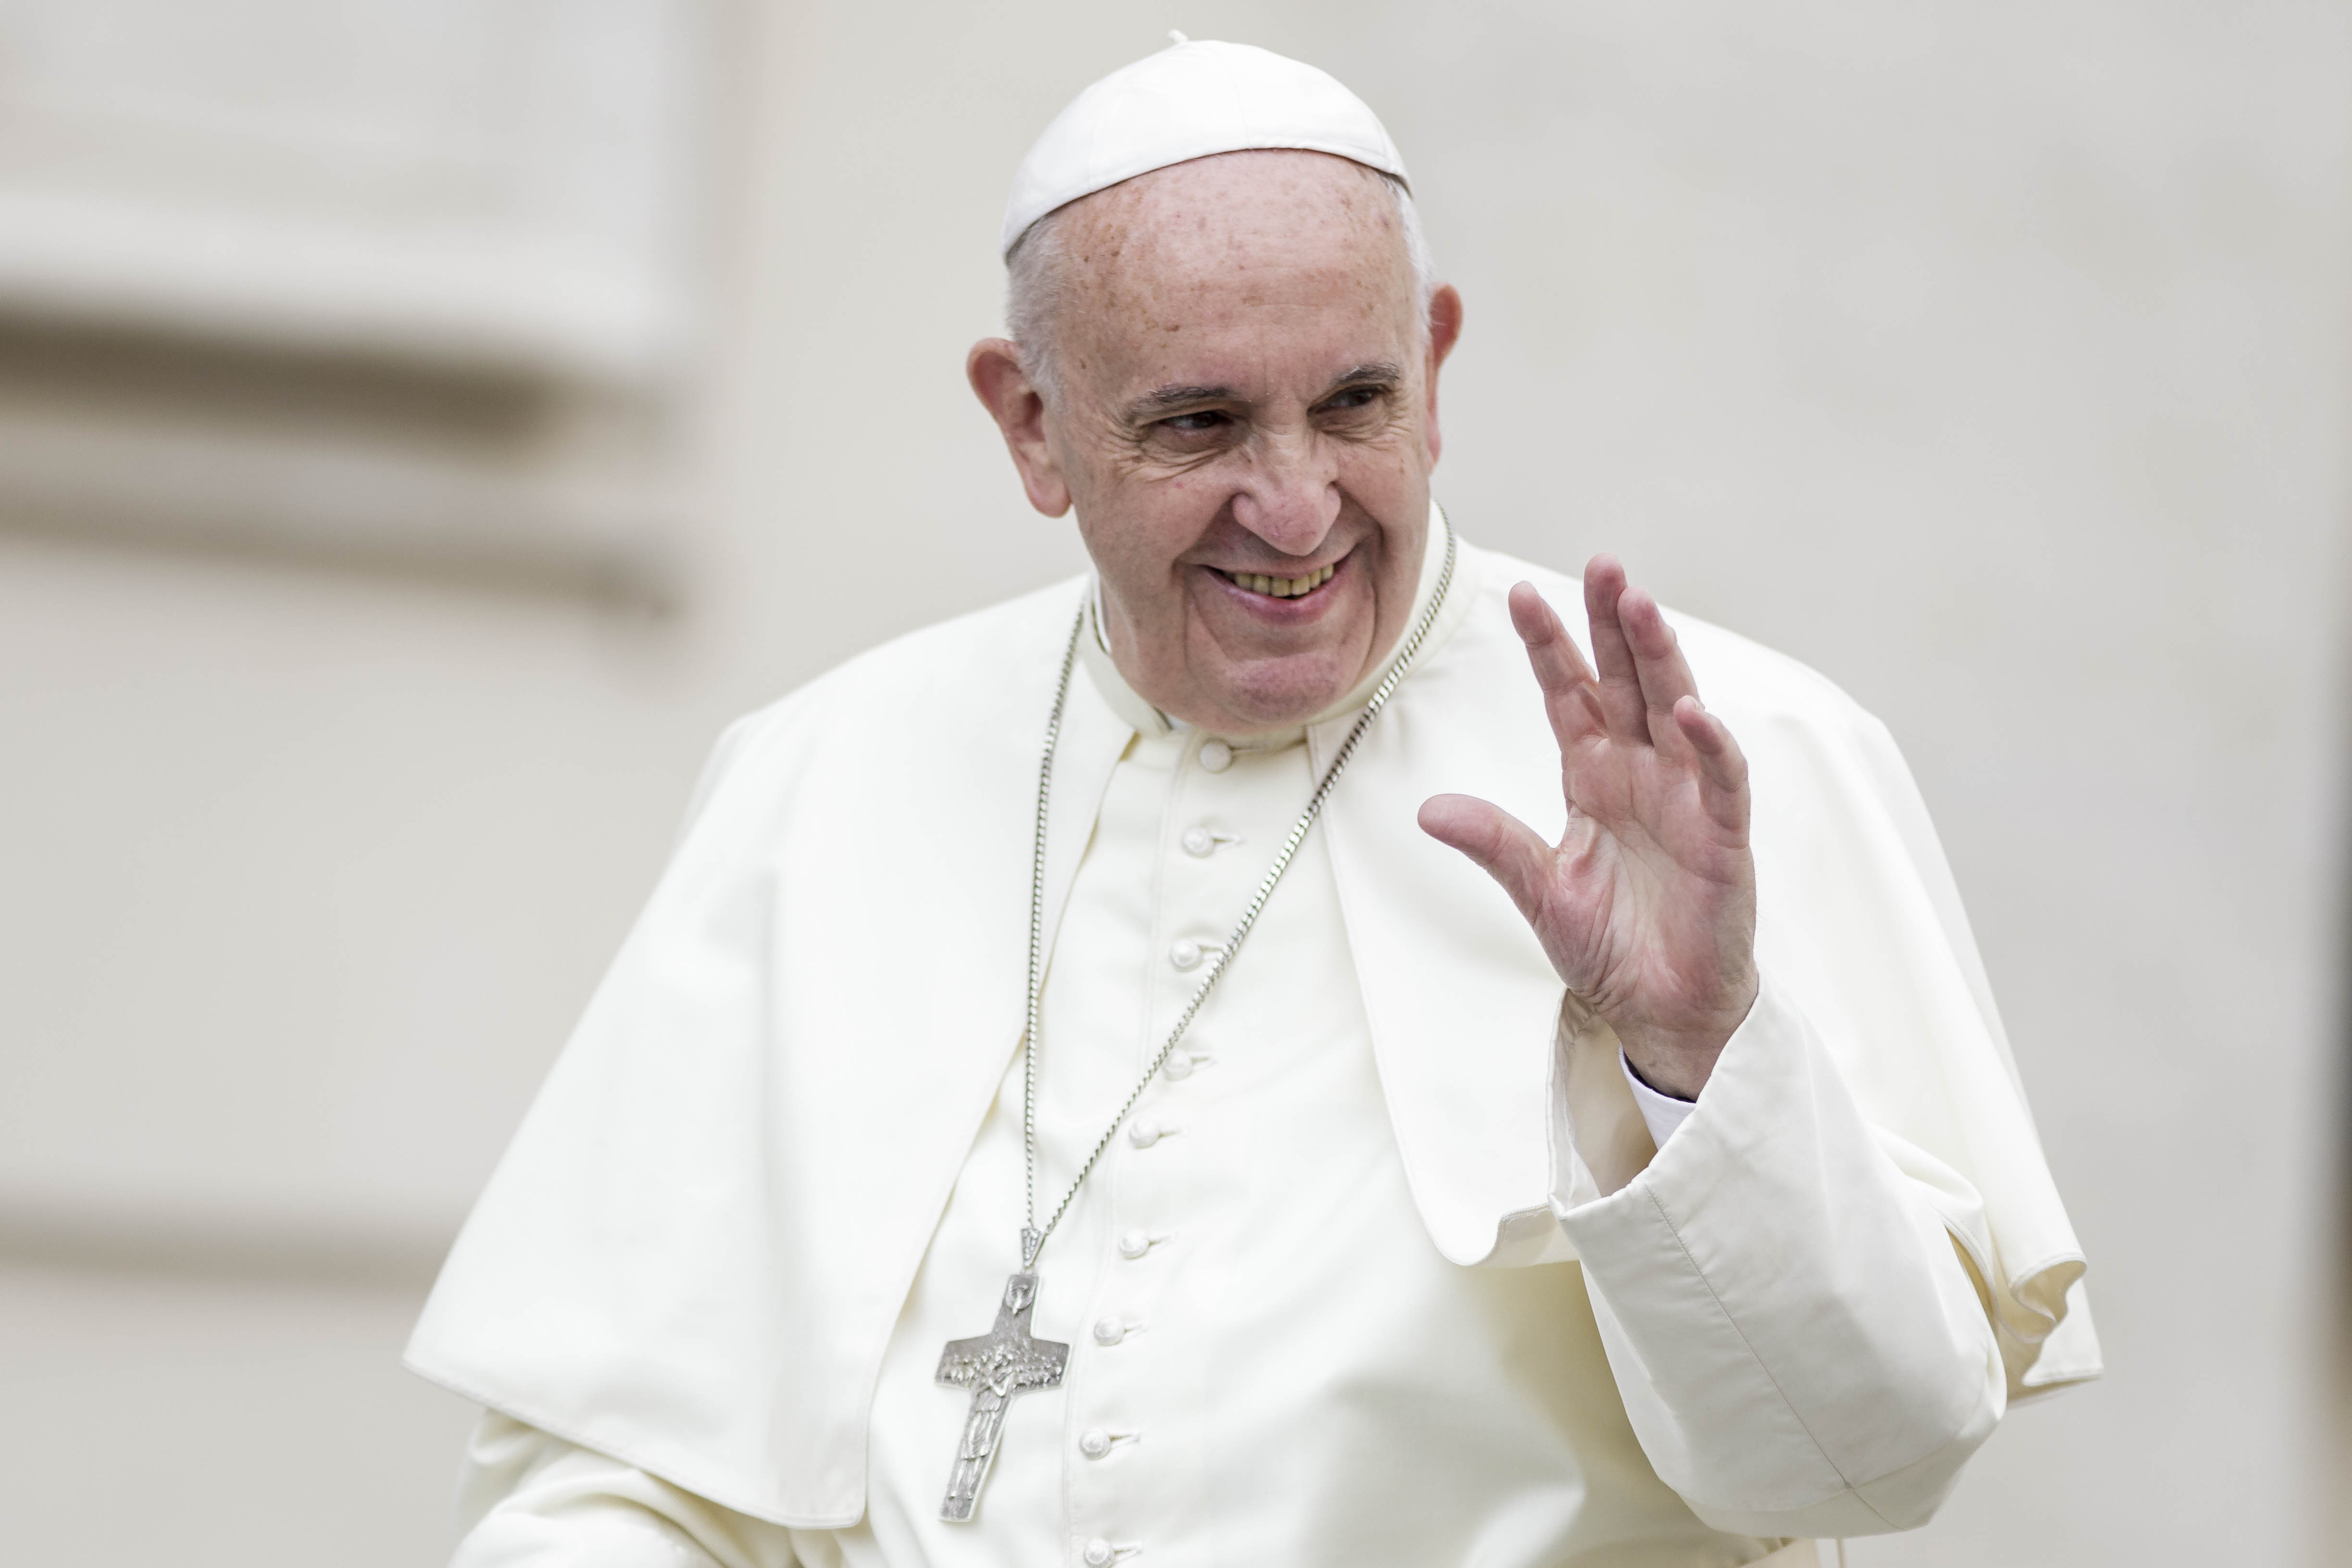 Pope Francis greets the faithful as he attends Weekly General Audience in St. Peter's Square in Vatican City.